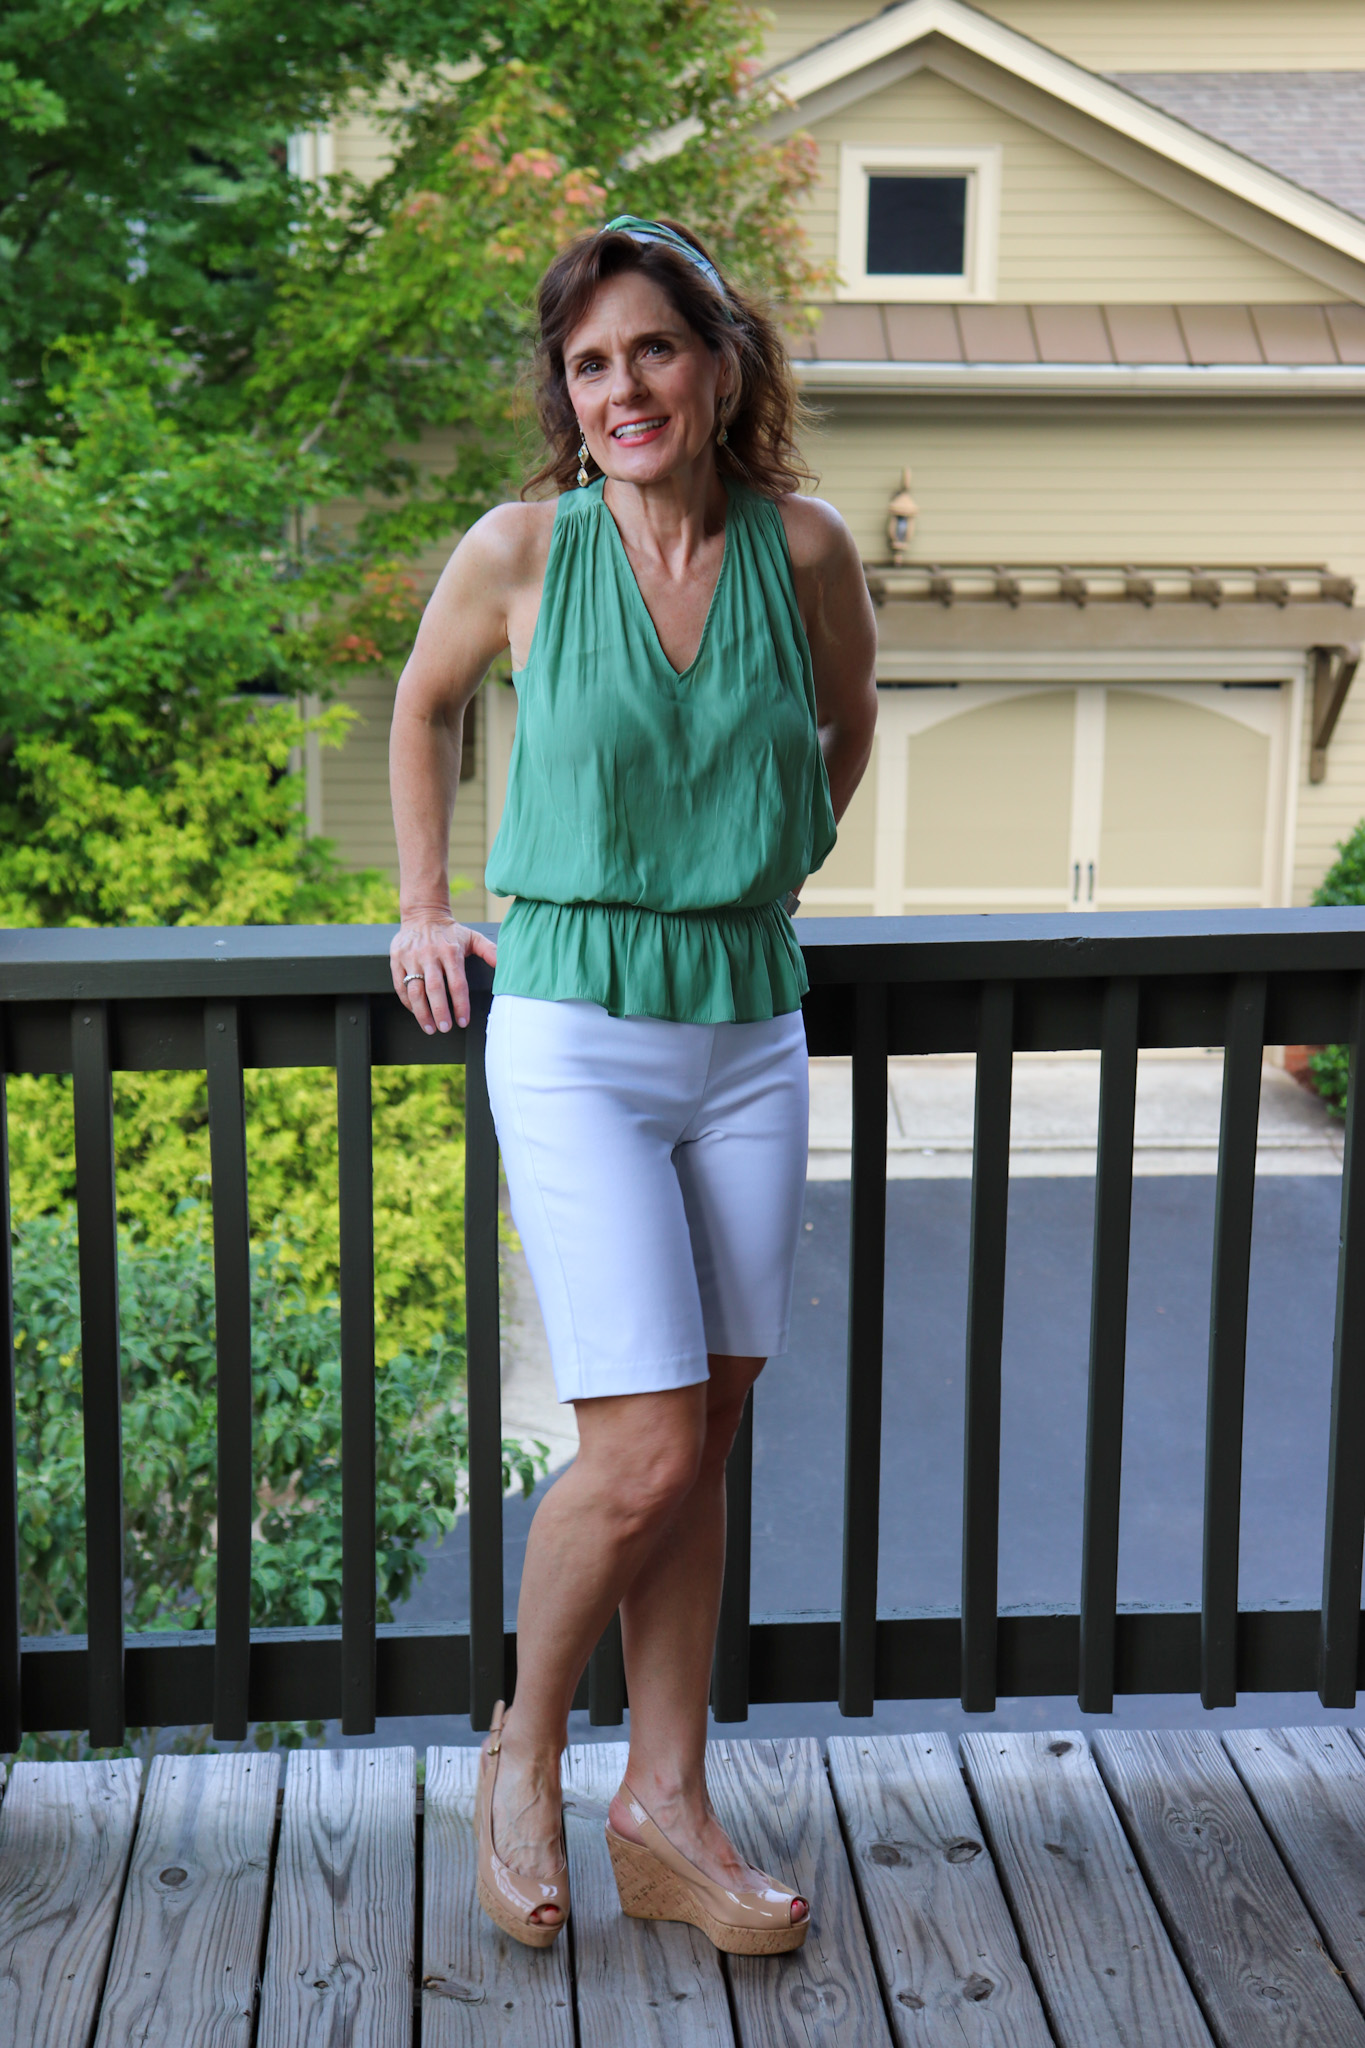 woman over 50 wearing a green sleeveless top , white bermuda shorts and a headband to pull her hair back to beat the humidity